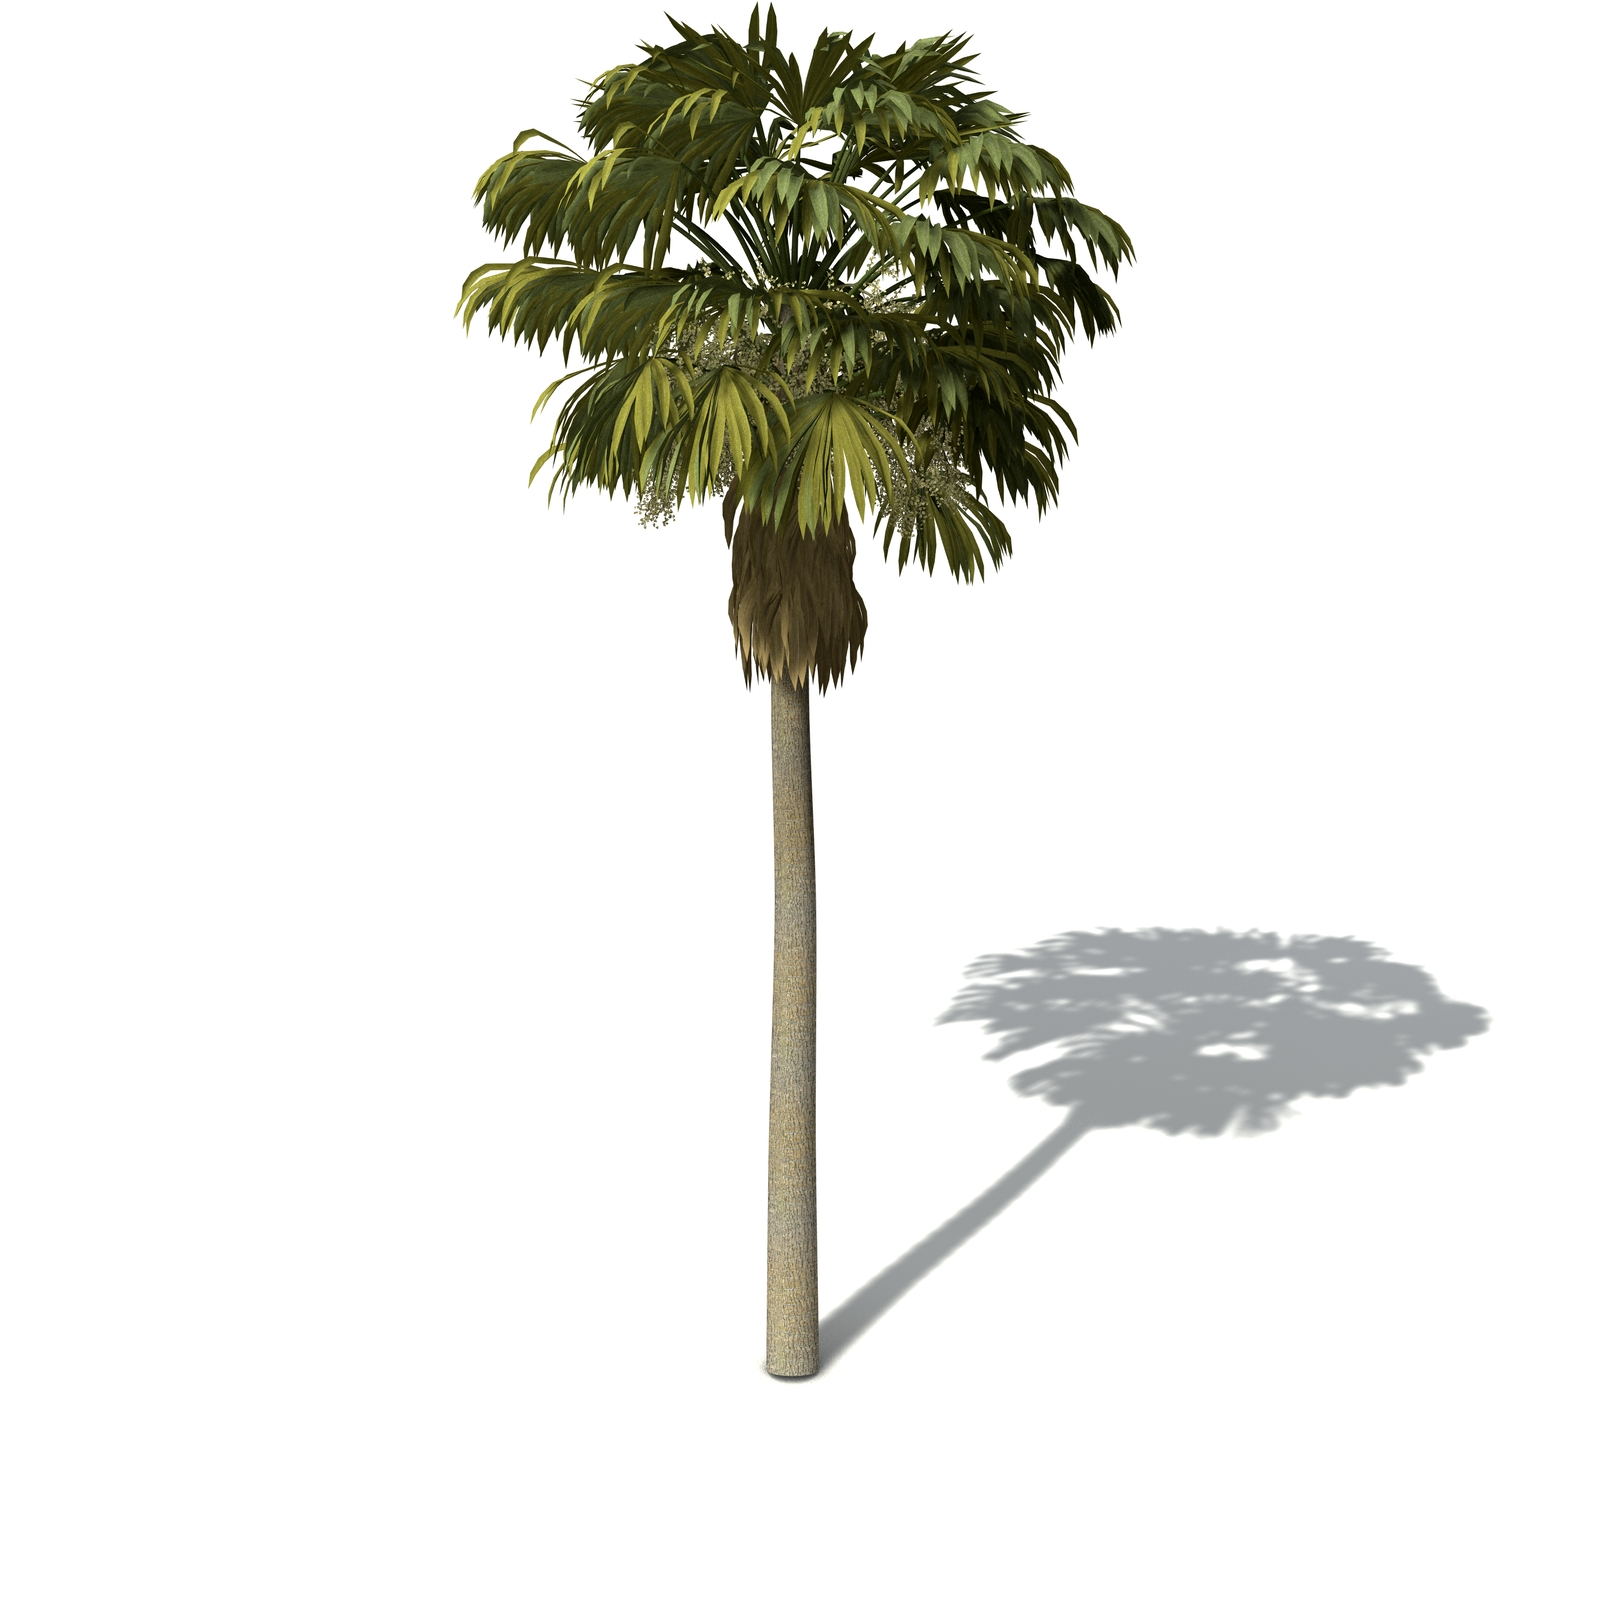 Xfrog Trees Australian Cabbage Palm